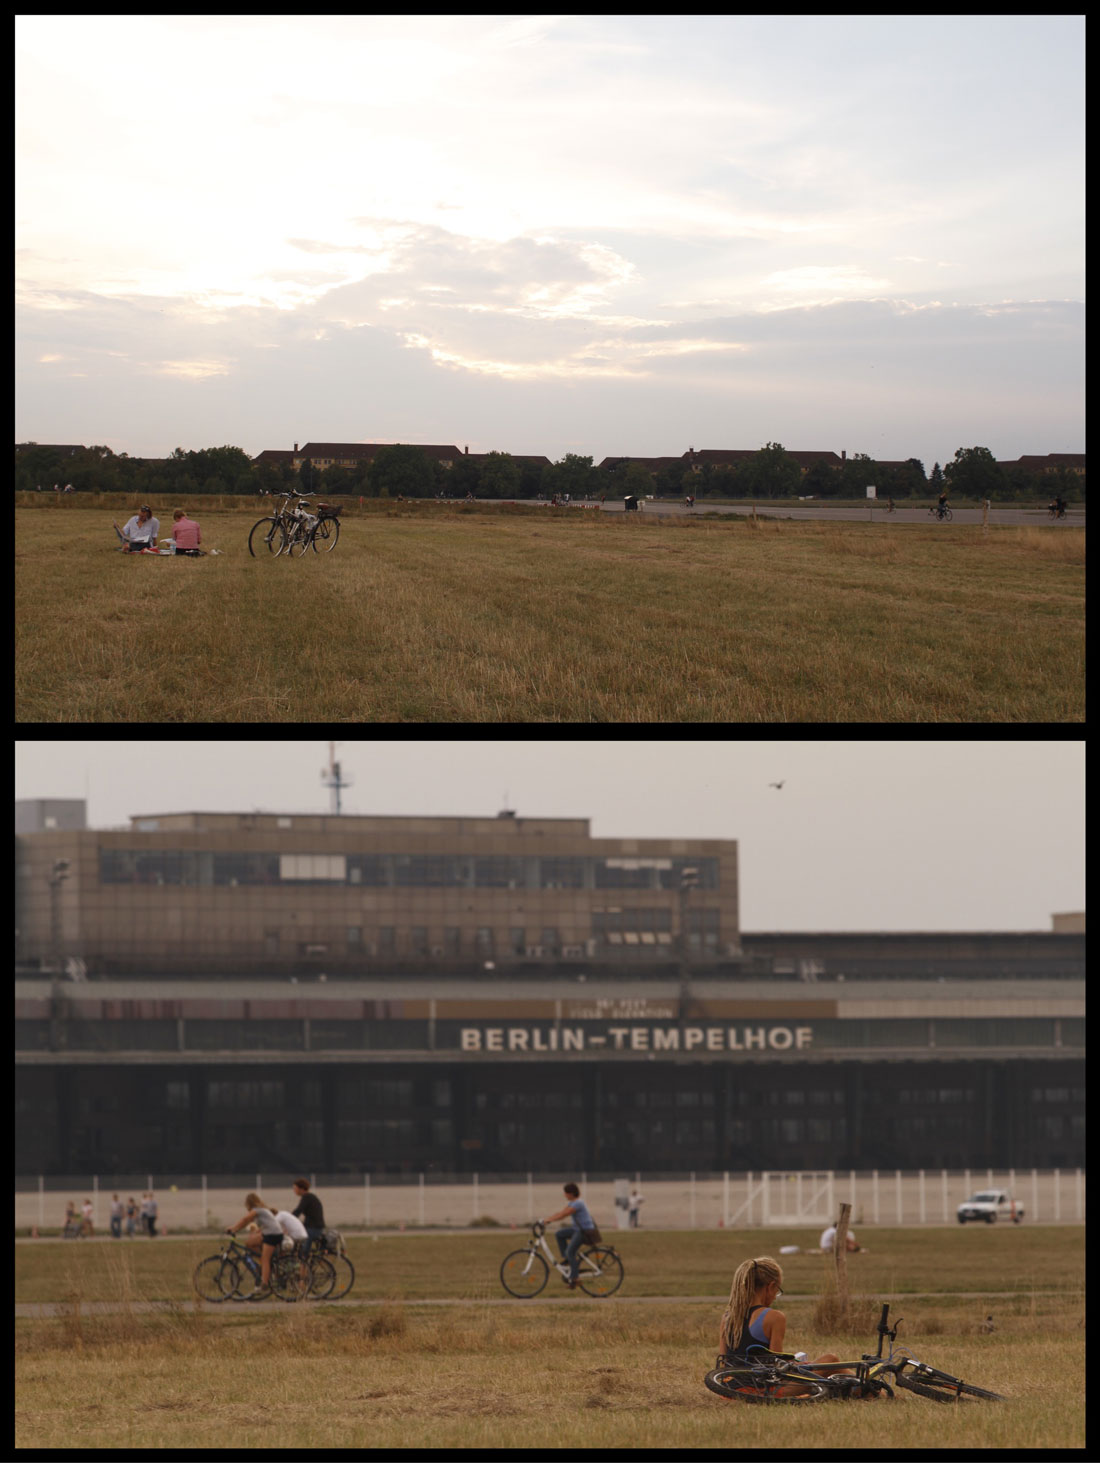 Tempelhofer Park, ancien aéroport, Berlin 2014, Ph. Moctar KANE.